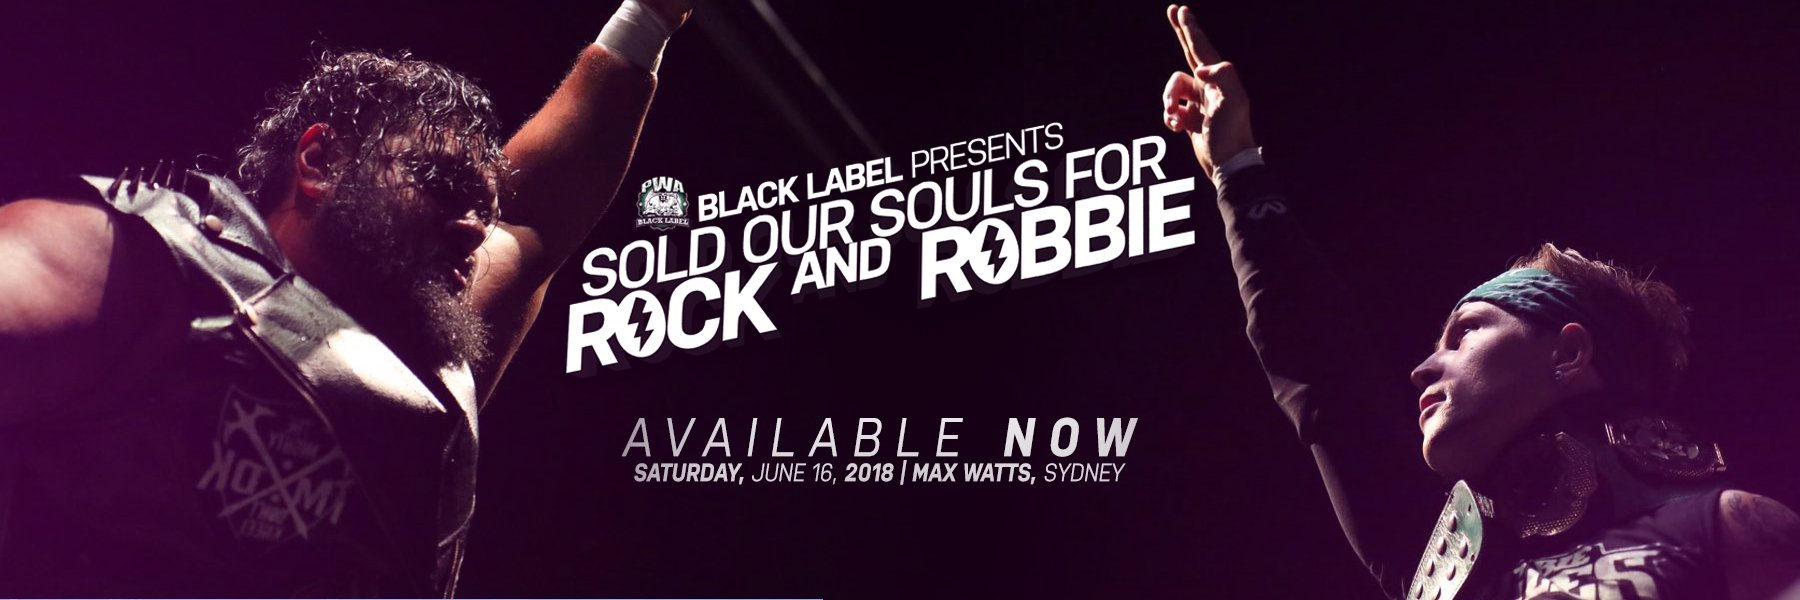 PWA Black Label - We Sold our Souls for Rock and Robbie - Available Now!